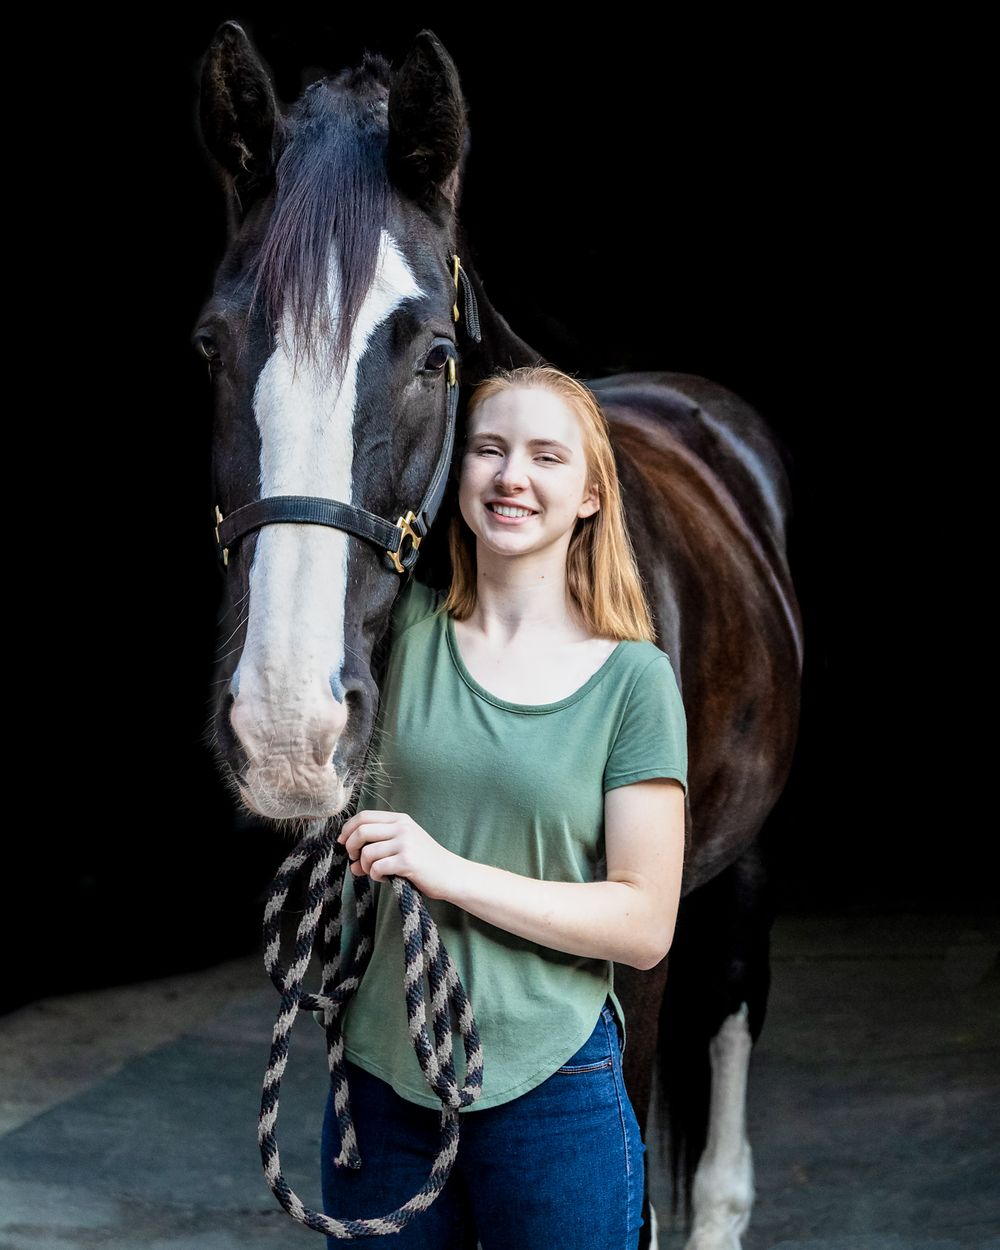 A young girl standing with a dark horse in front of a black background